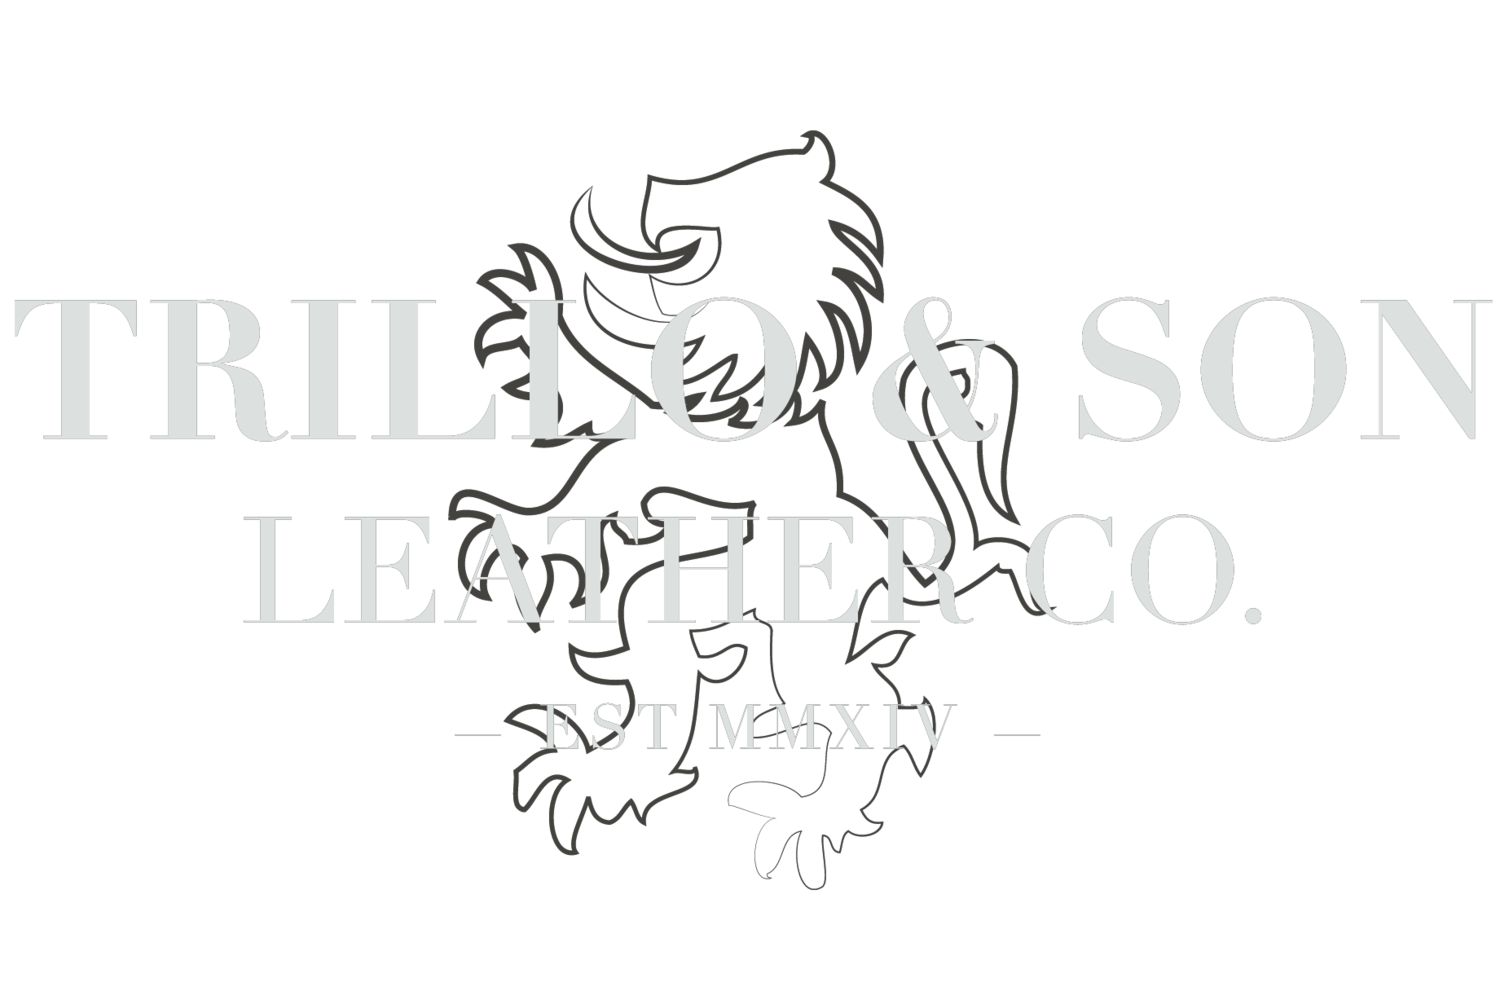 Trillo & Son Leather Co.